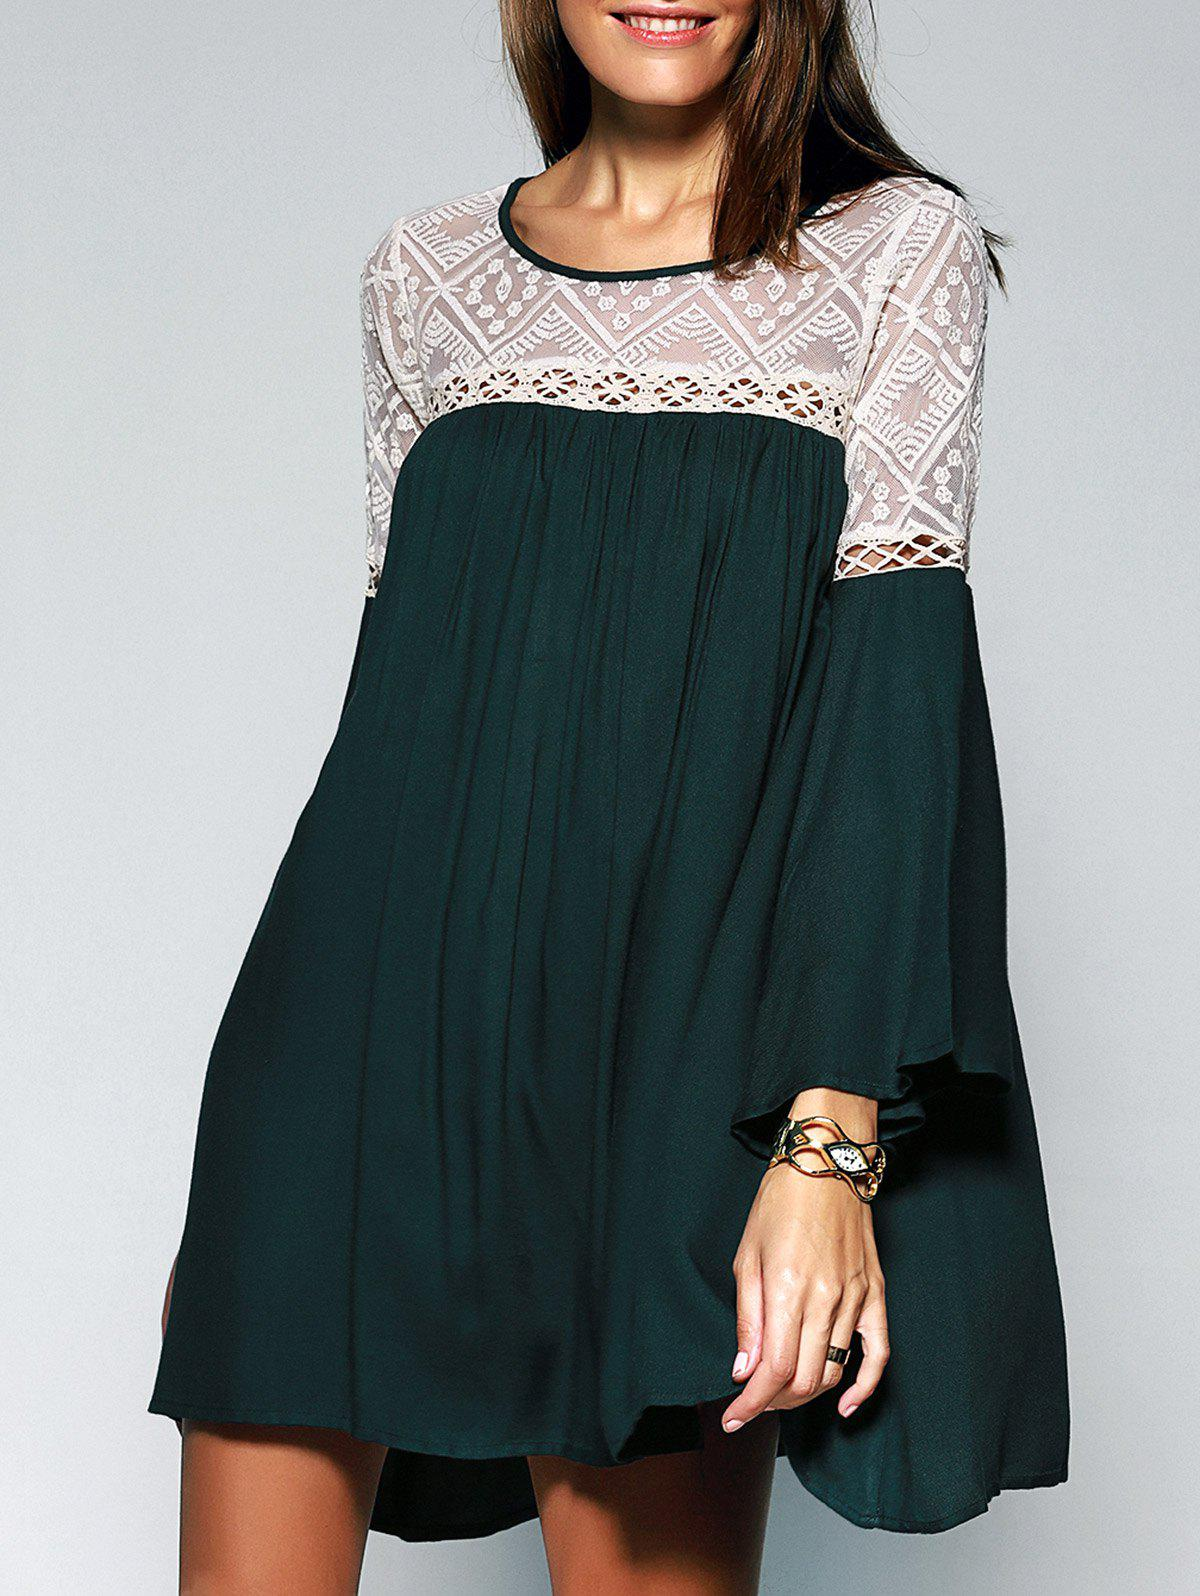 Sale Loose-Fitting Women's Scoop Neck Lace See-through Bell Sleeves Tunic Dress